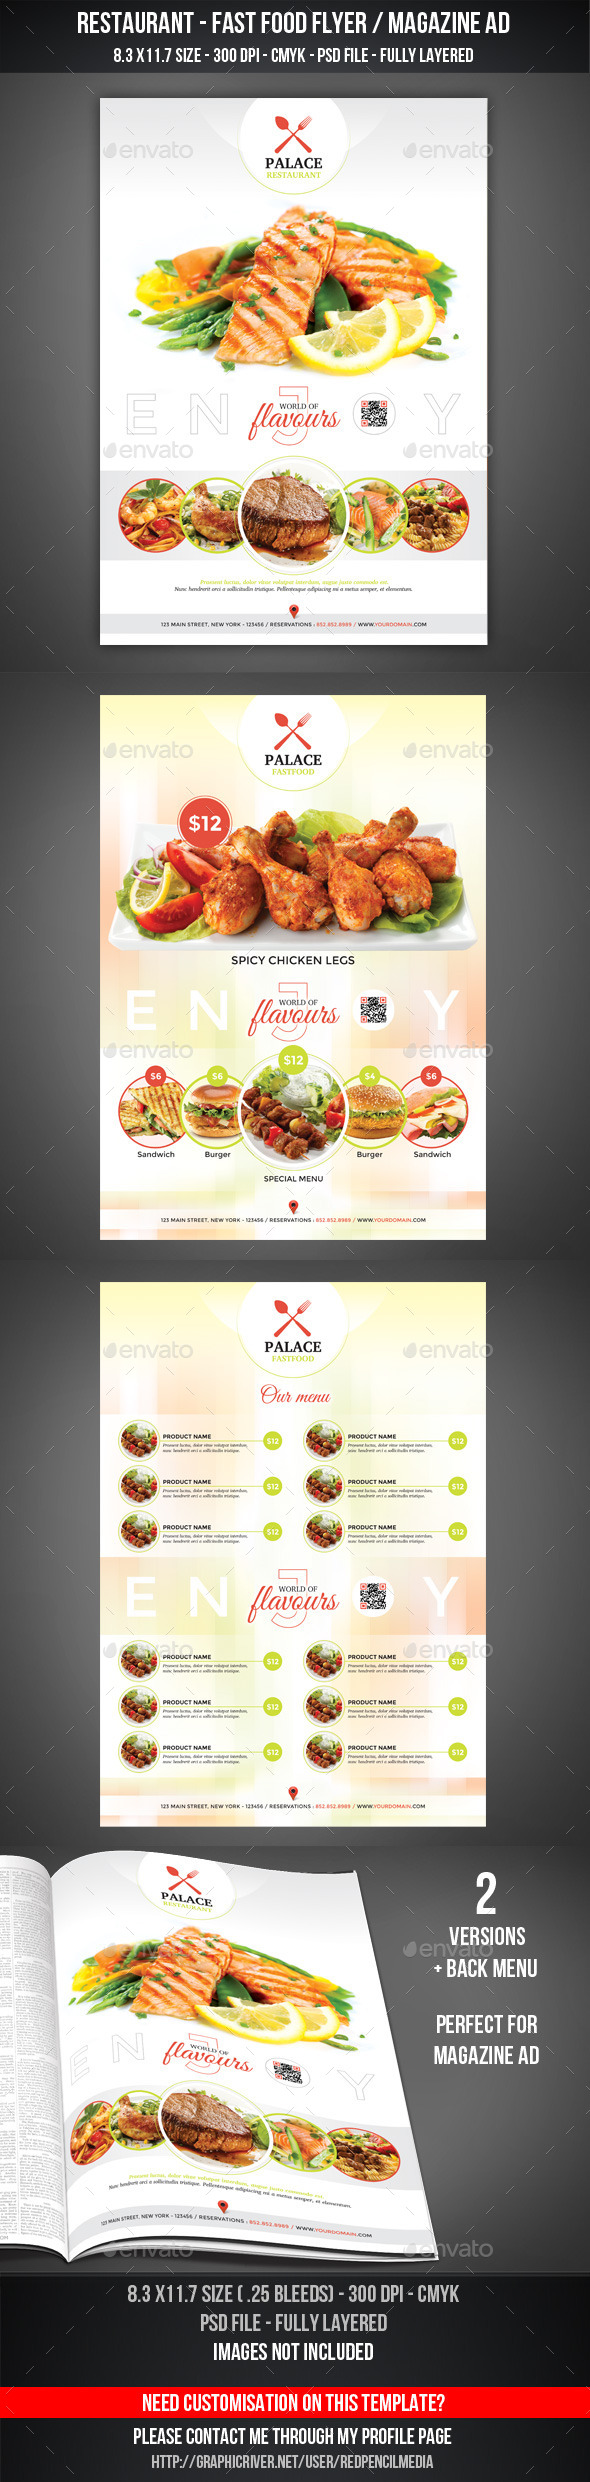 GraphicRiver Restaurant Fastfood Flyer Magazine AD 11212478